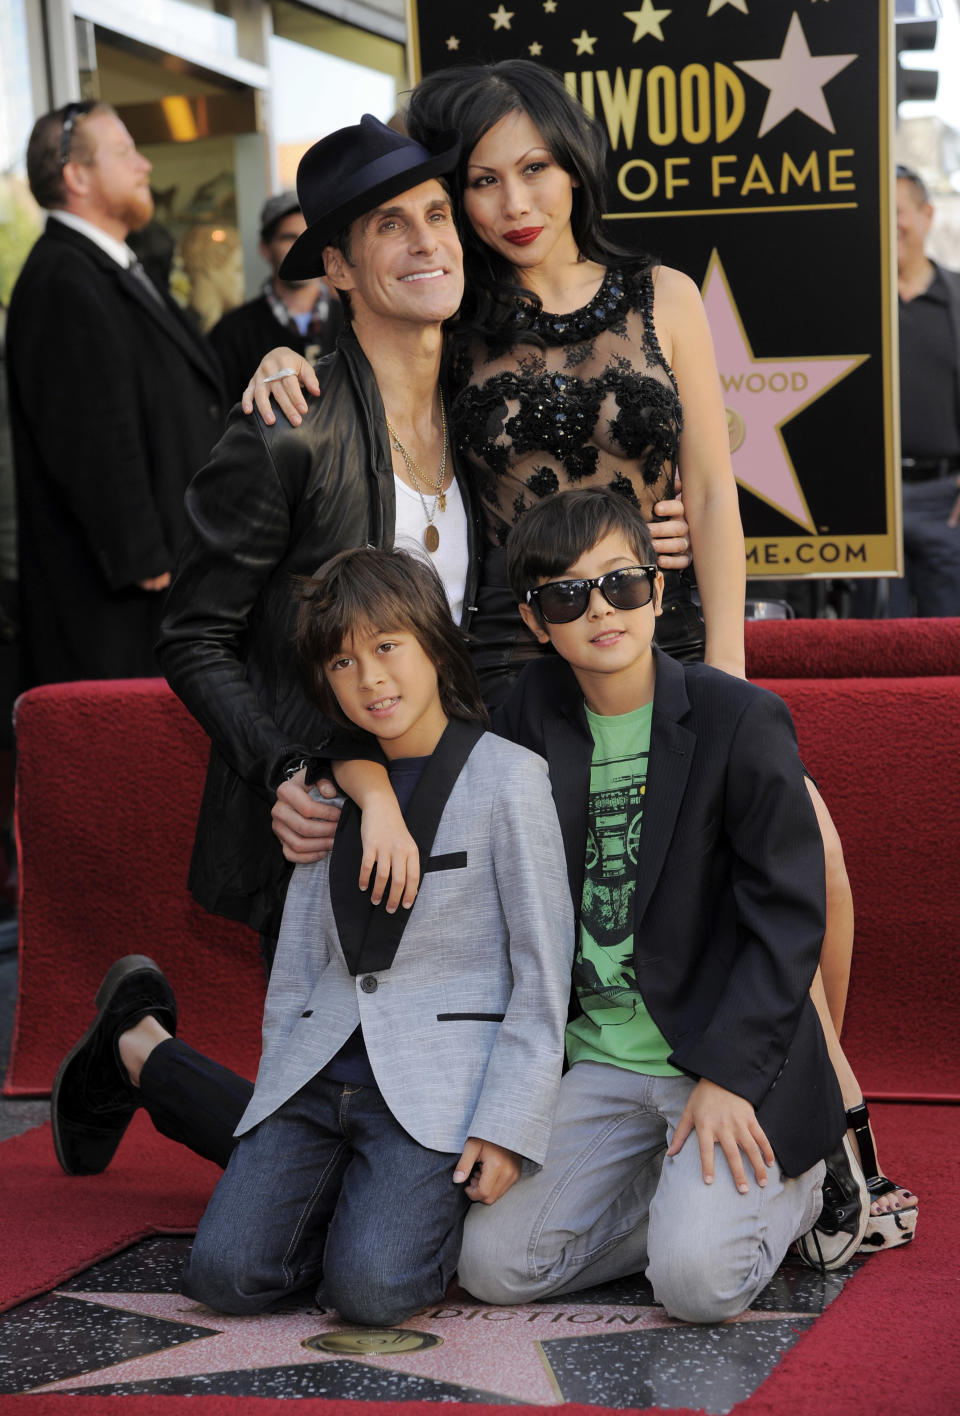 Perry and Etty Lau Farrell with their sons Izzadore and Hezron in 2013 at  Jane's Addiction's Hollywood Walk of Fame star-unveiling ceremony. (Photo: Chris Pizzello/Invision/AP)